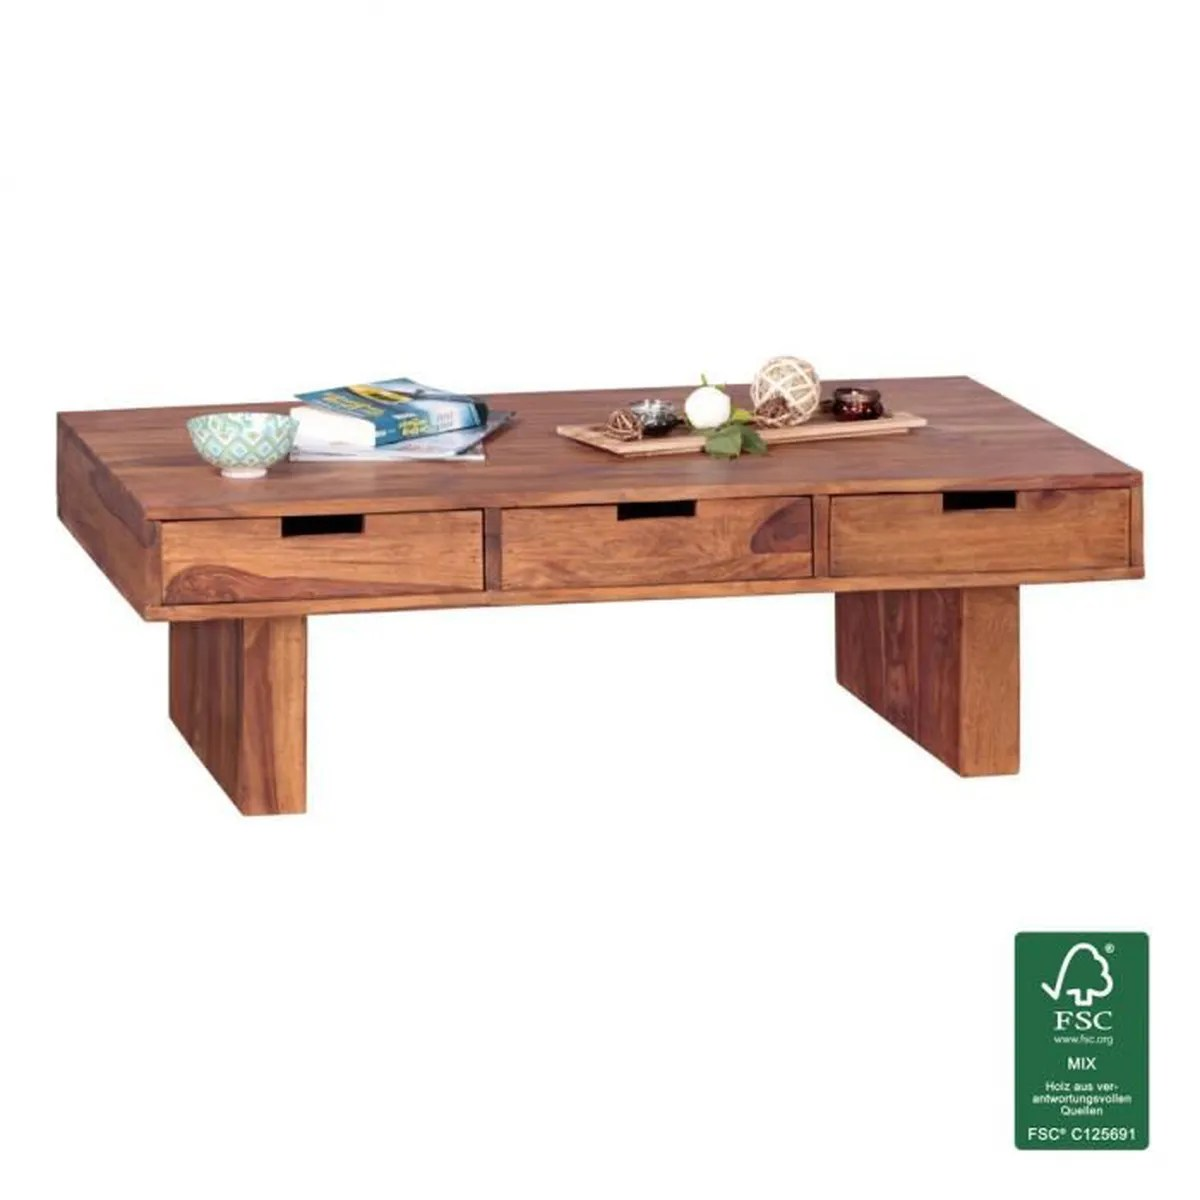 Table Basse Style Campagne Wohnling Table Basse En Bois Massif Table Sheesham Salon Design